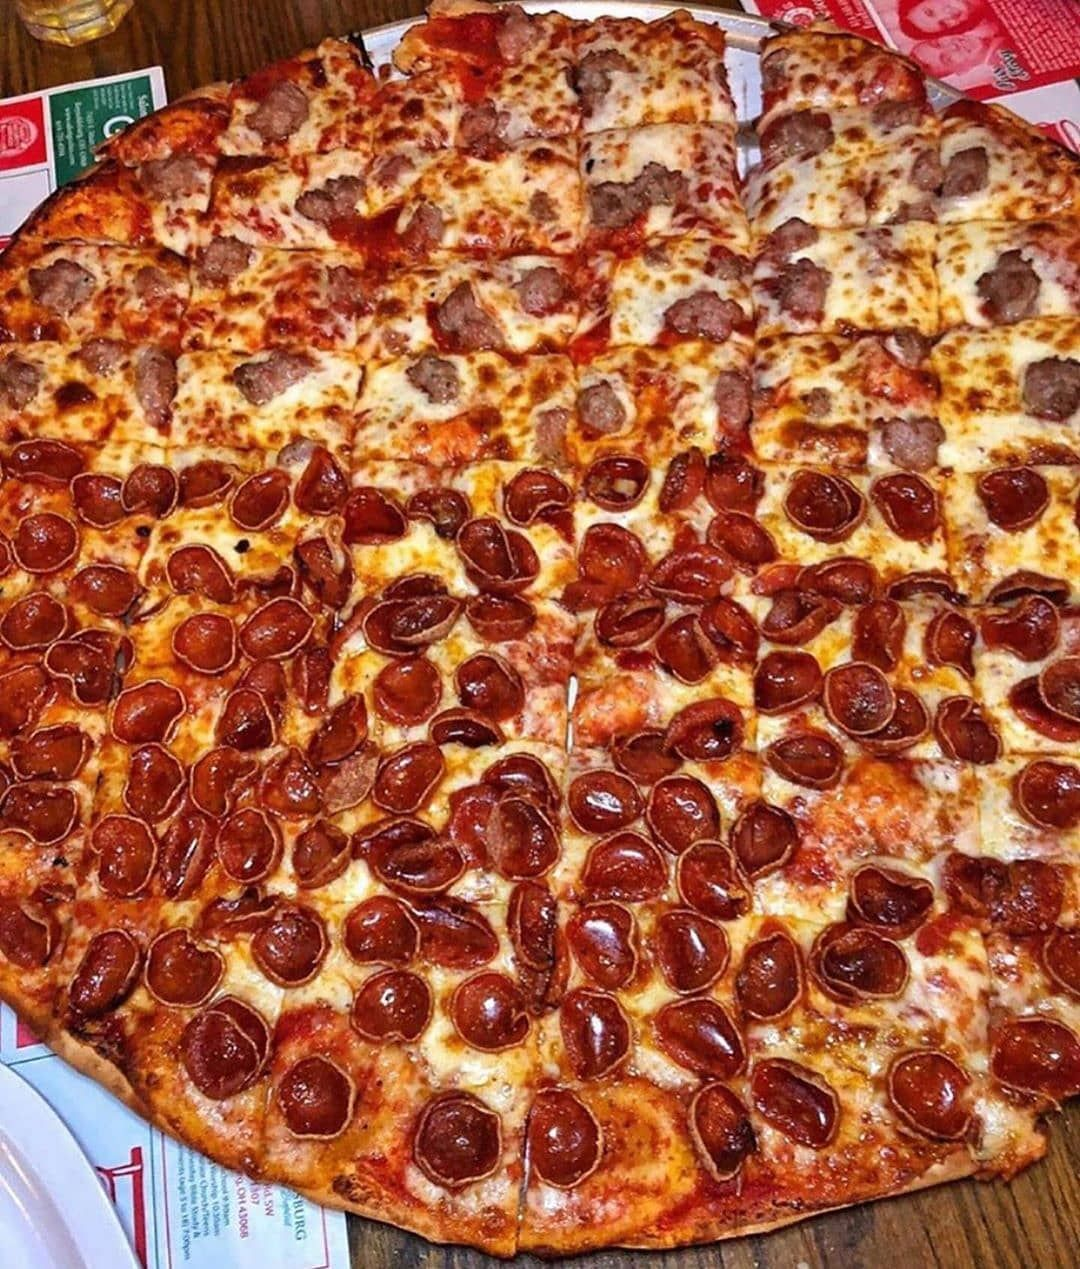 What S The Most Slices Of Pizza You Ve Ever Eaten At Once By Upperfeast Pizza Pizzaholic Pizzaiolo Pizzarolls Pi In 2020 Food Recipes Wine Recipes